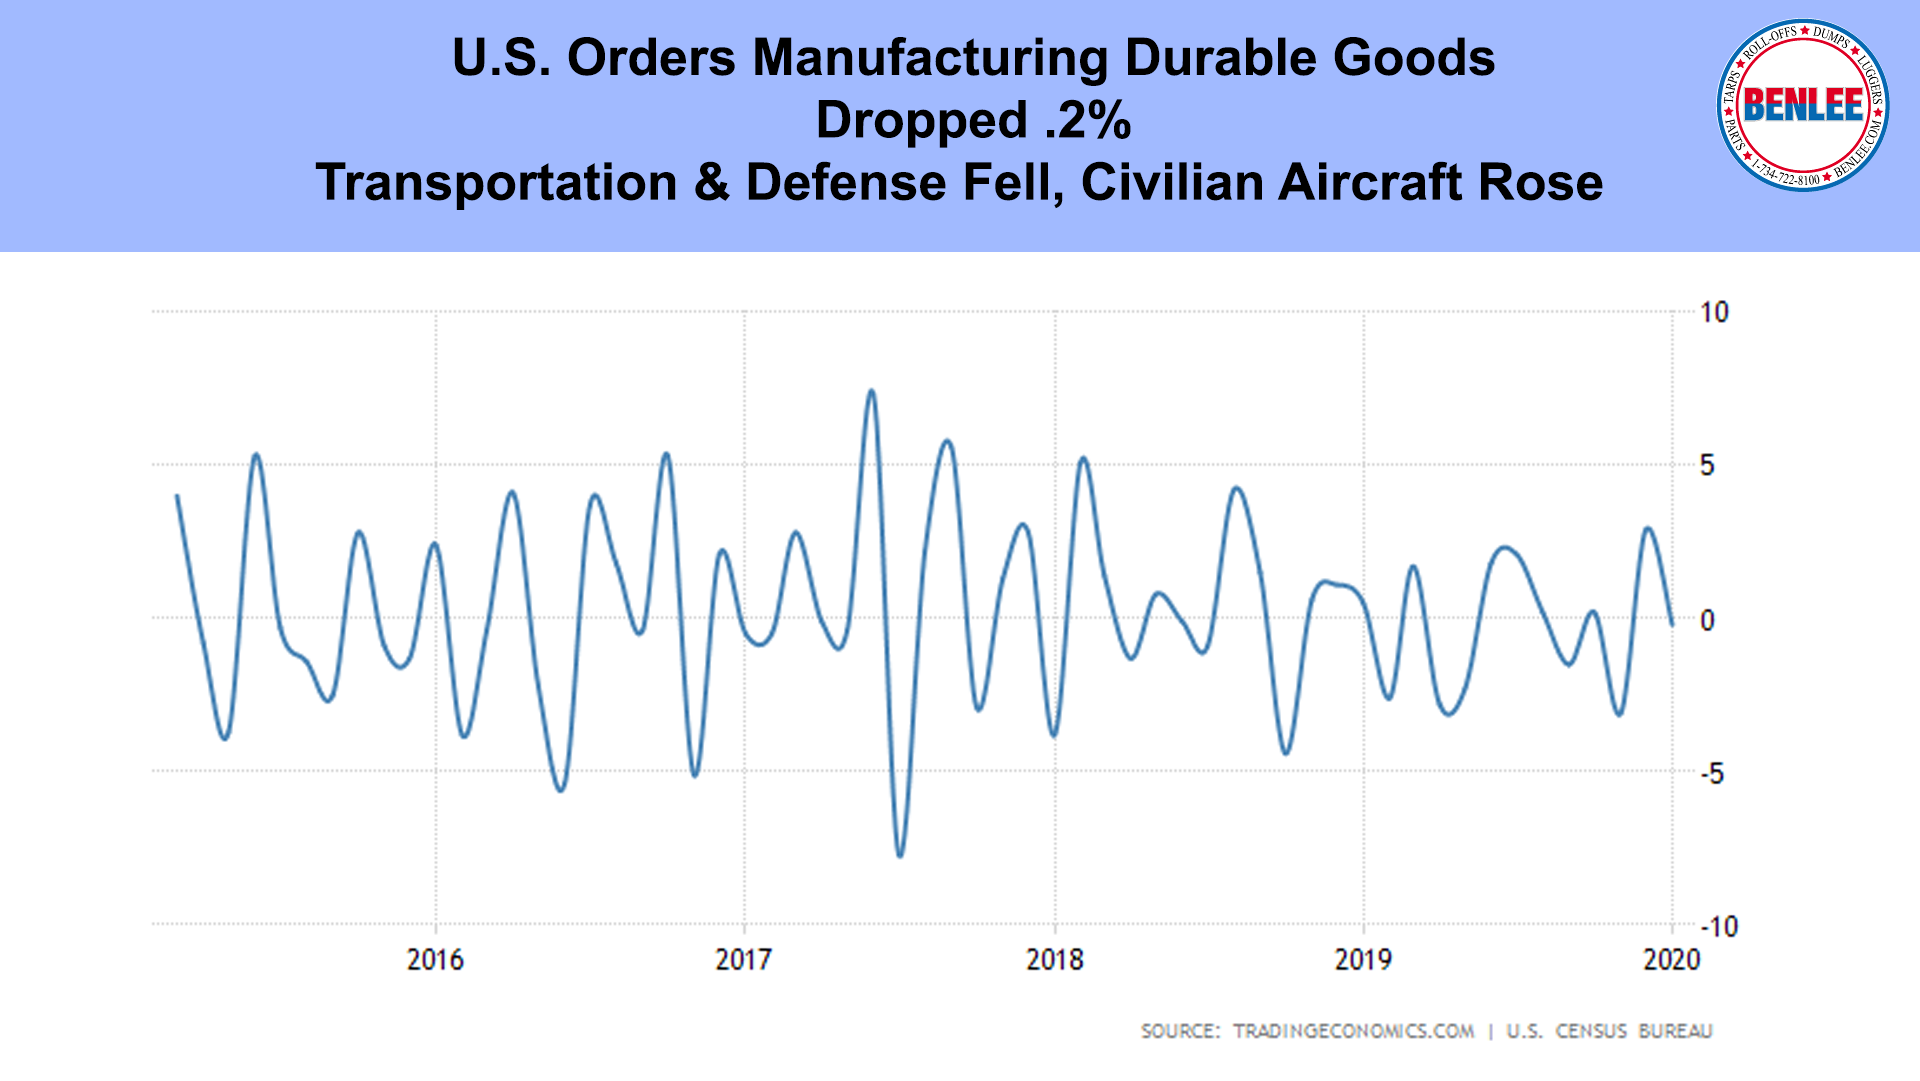 U.S. Orders Manufacturing Durable Goods